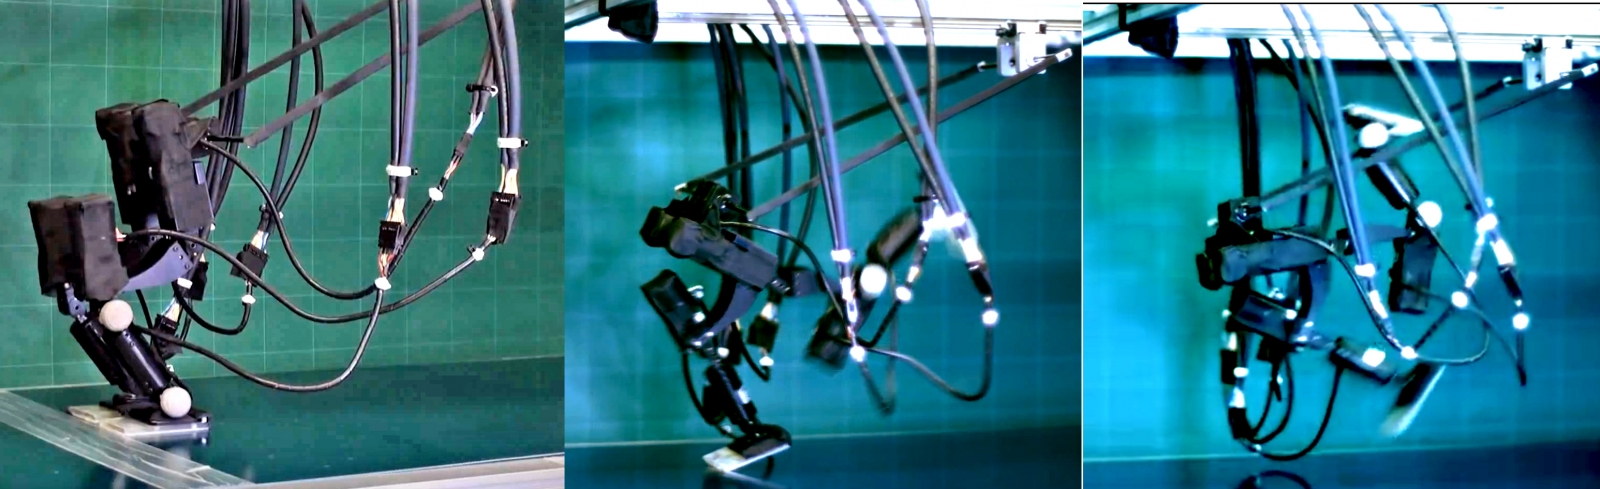 The Achires biped robot in action